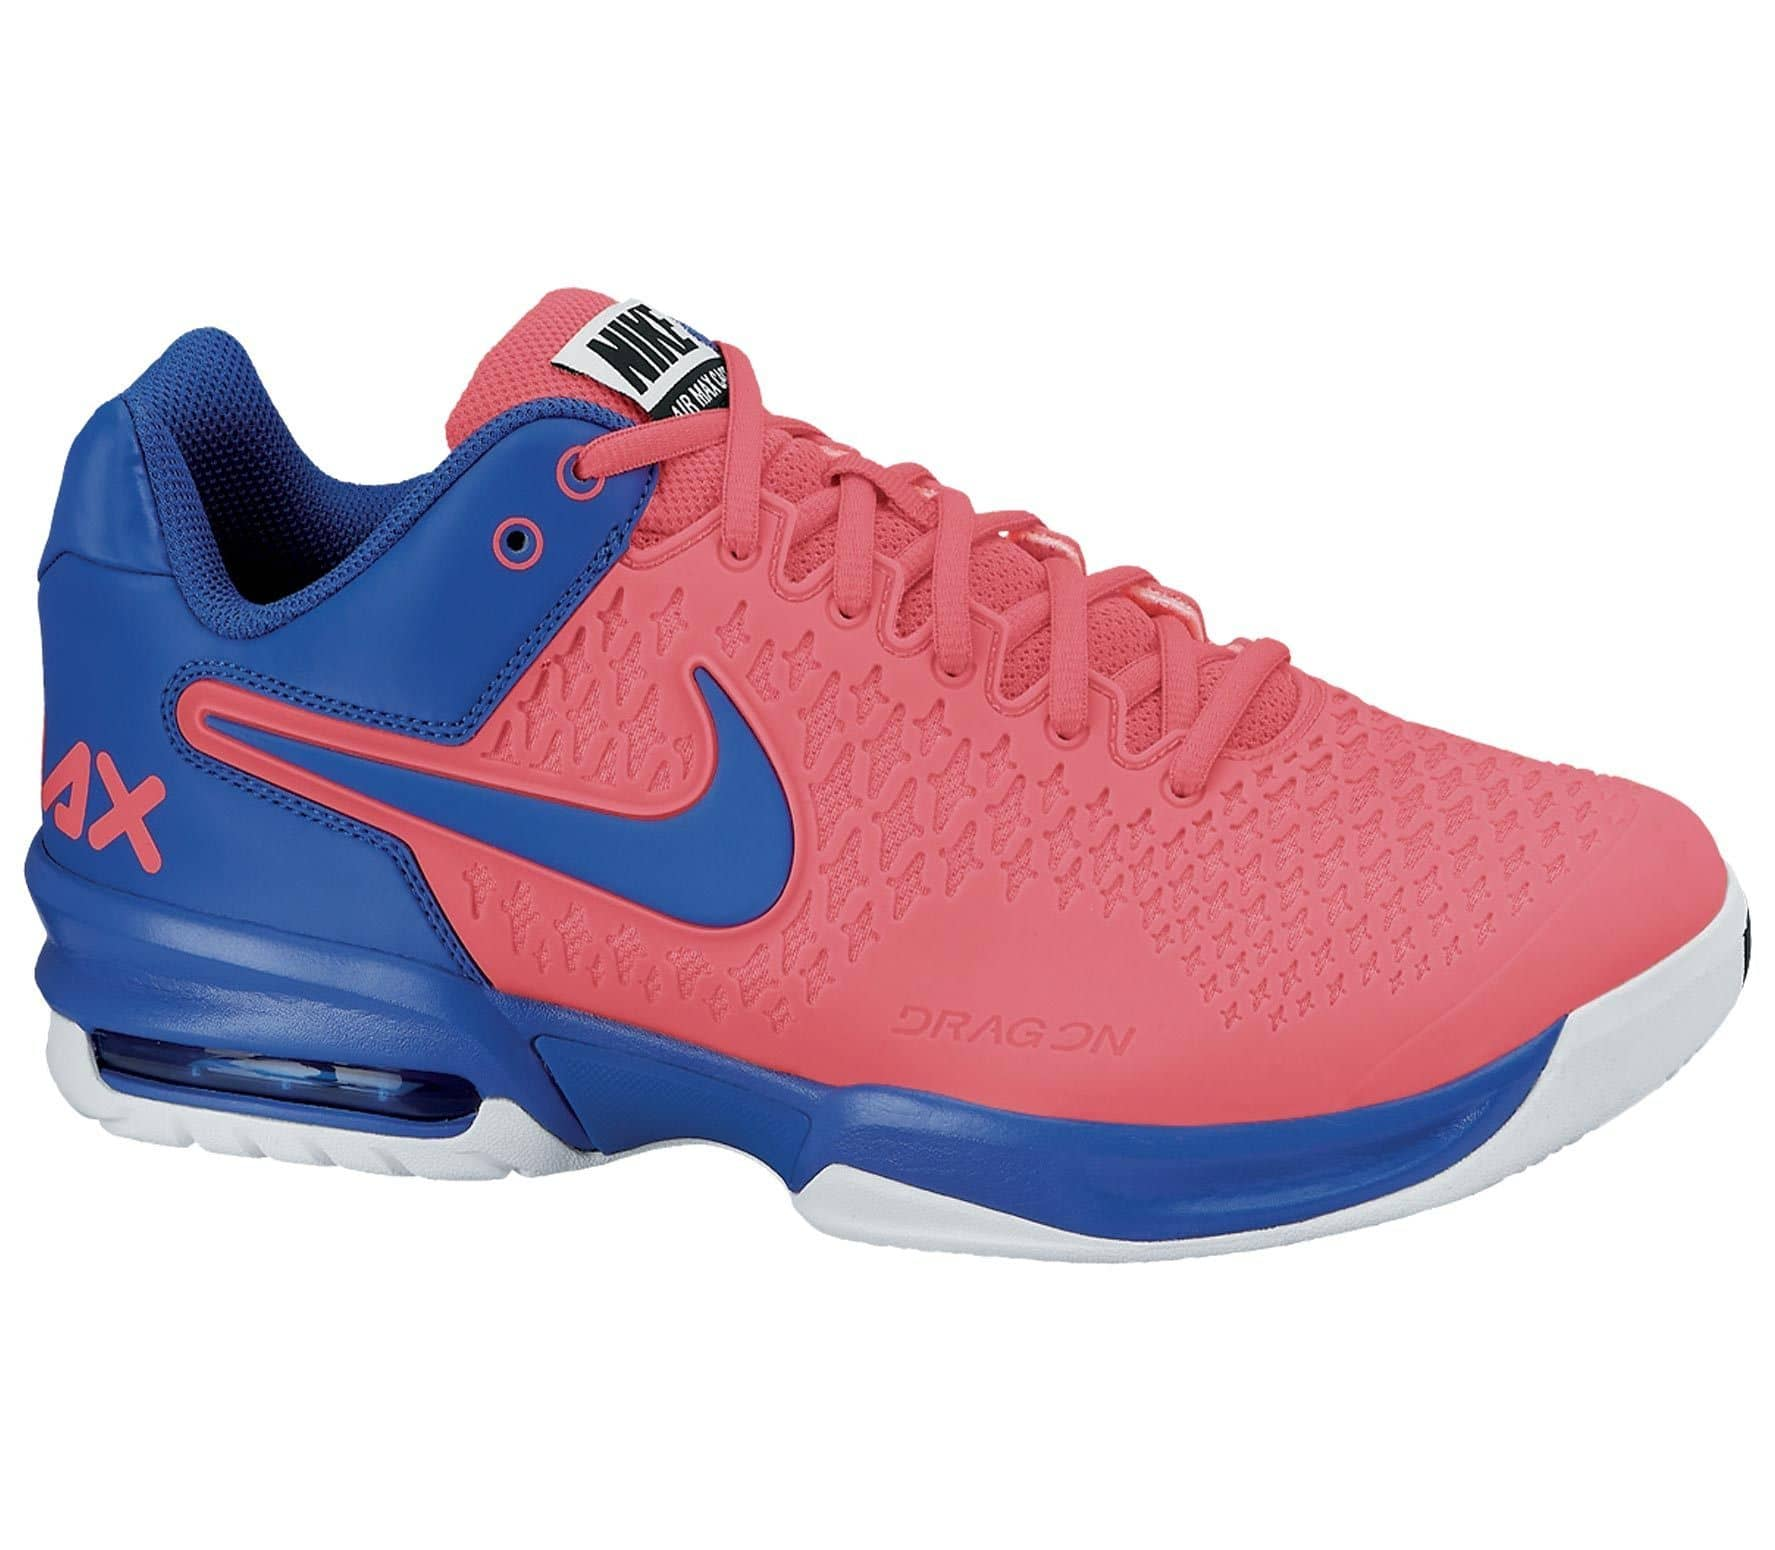 official photos 26725 3afc4 Air Max Cage mens tennis shoes (pinkblue)